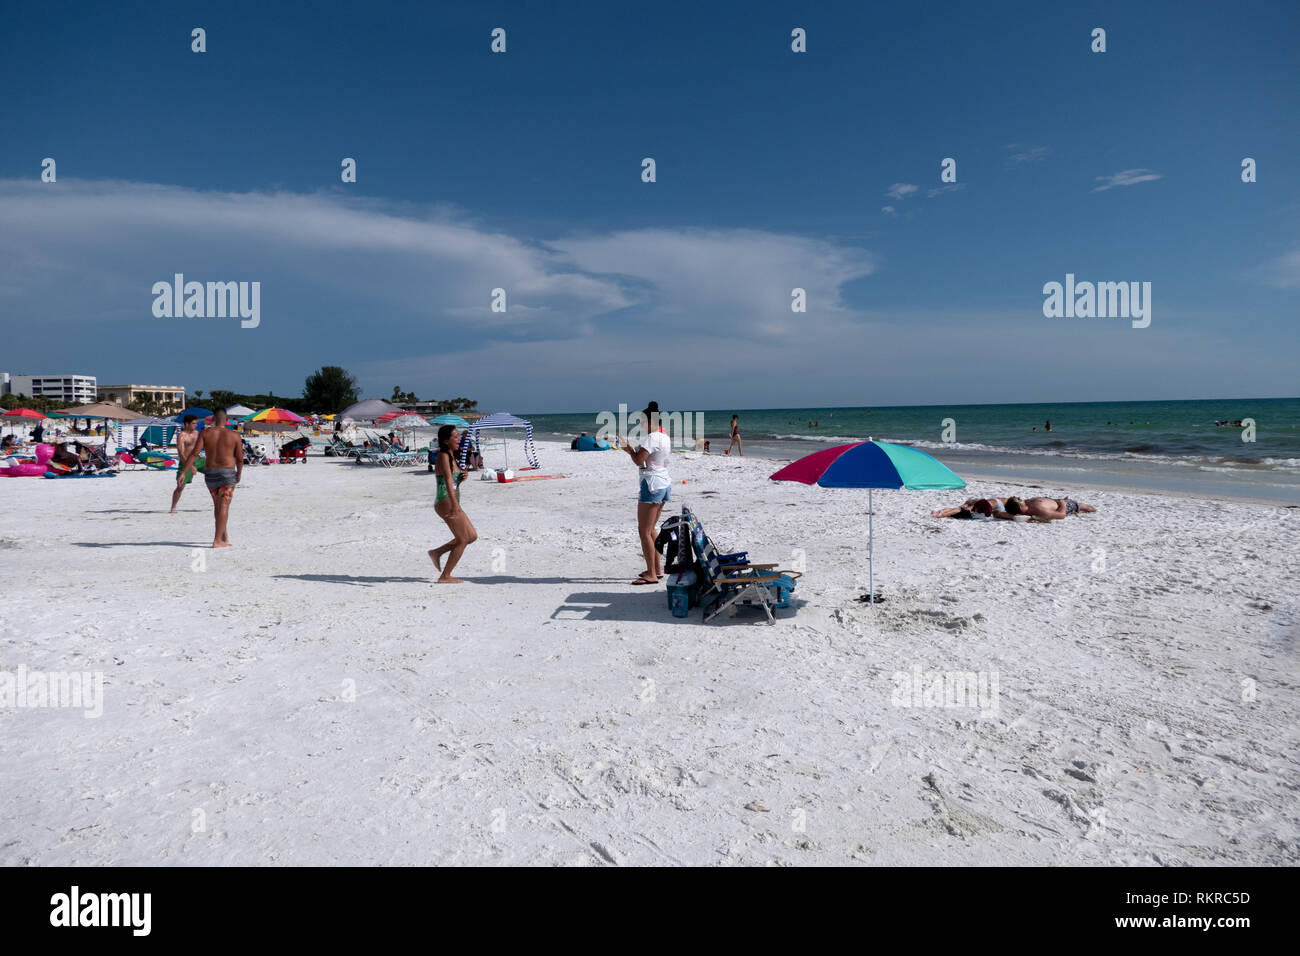 People relaxing on holiday on the Siesta Key beach in Sarasota, Florida, USA. Tourists on summer vacation near the sea. American landscape and recreat - Stock Image